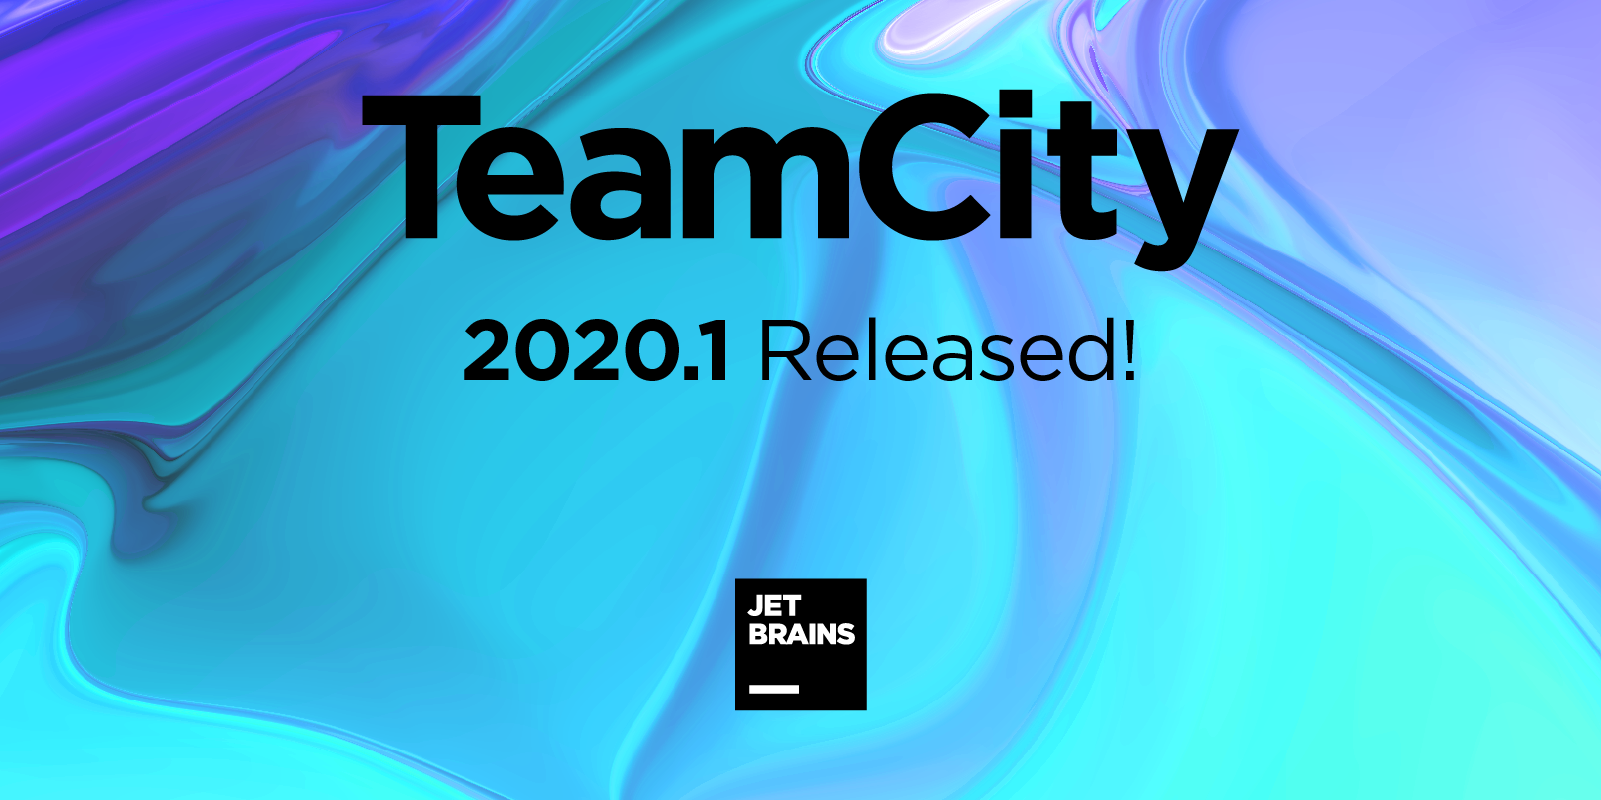 TeamCity 2020.1 released